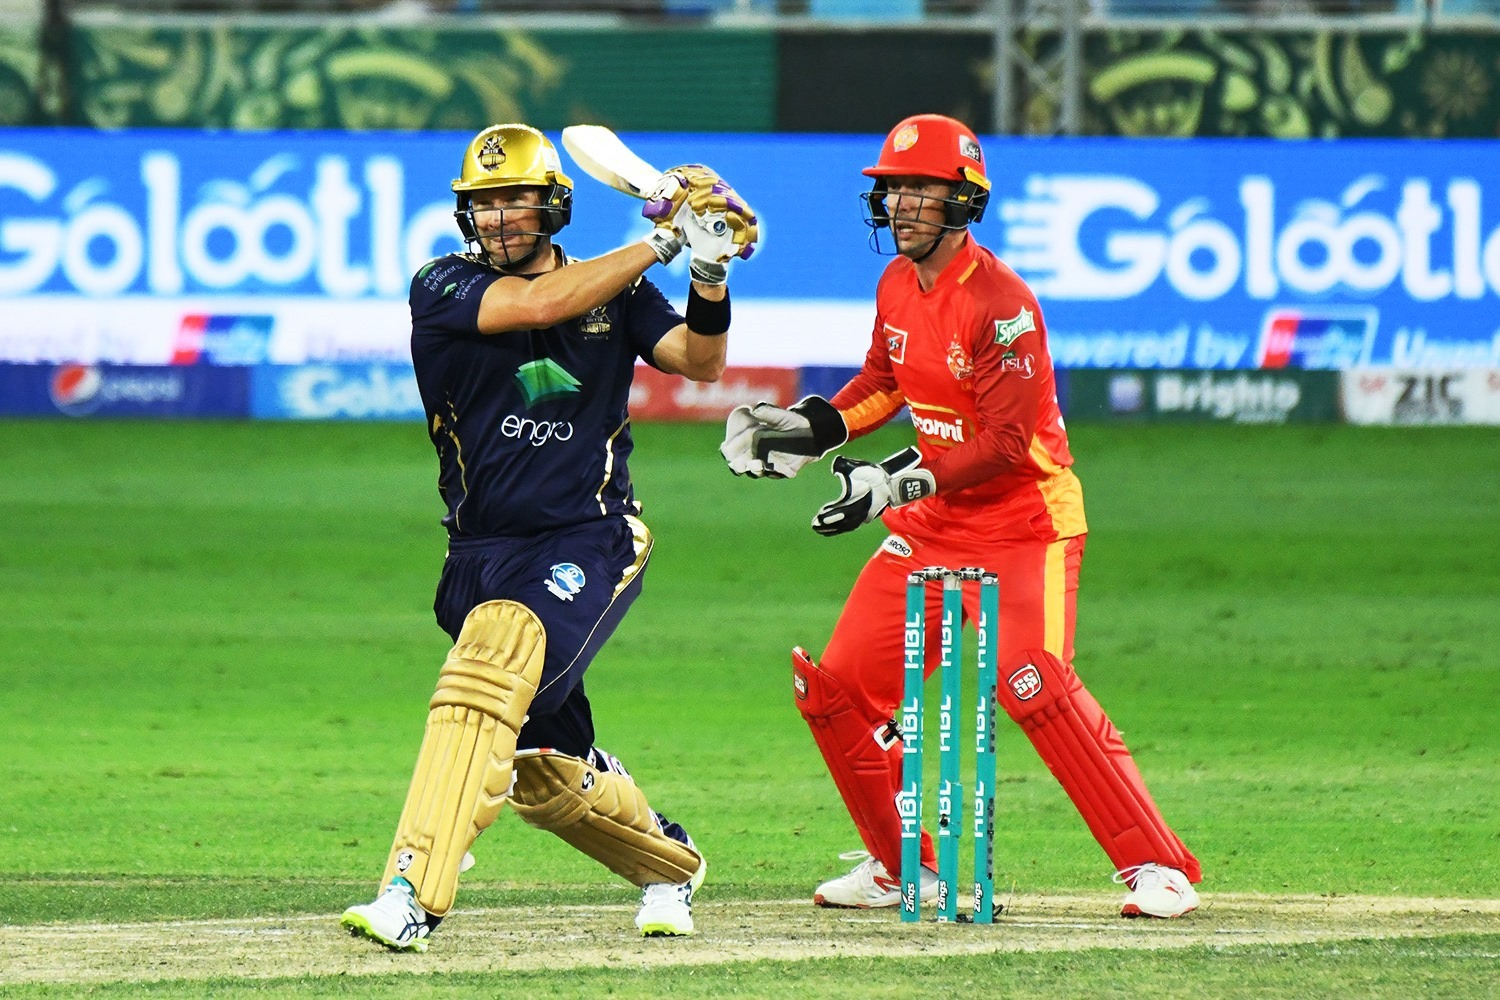 Watosn, Tanvir star in Quetta's win over Islamabad in HBL PSL